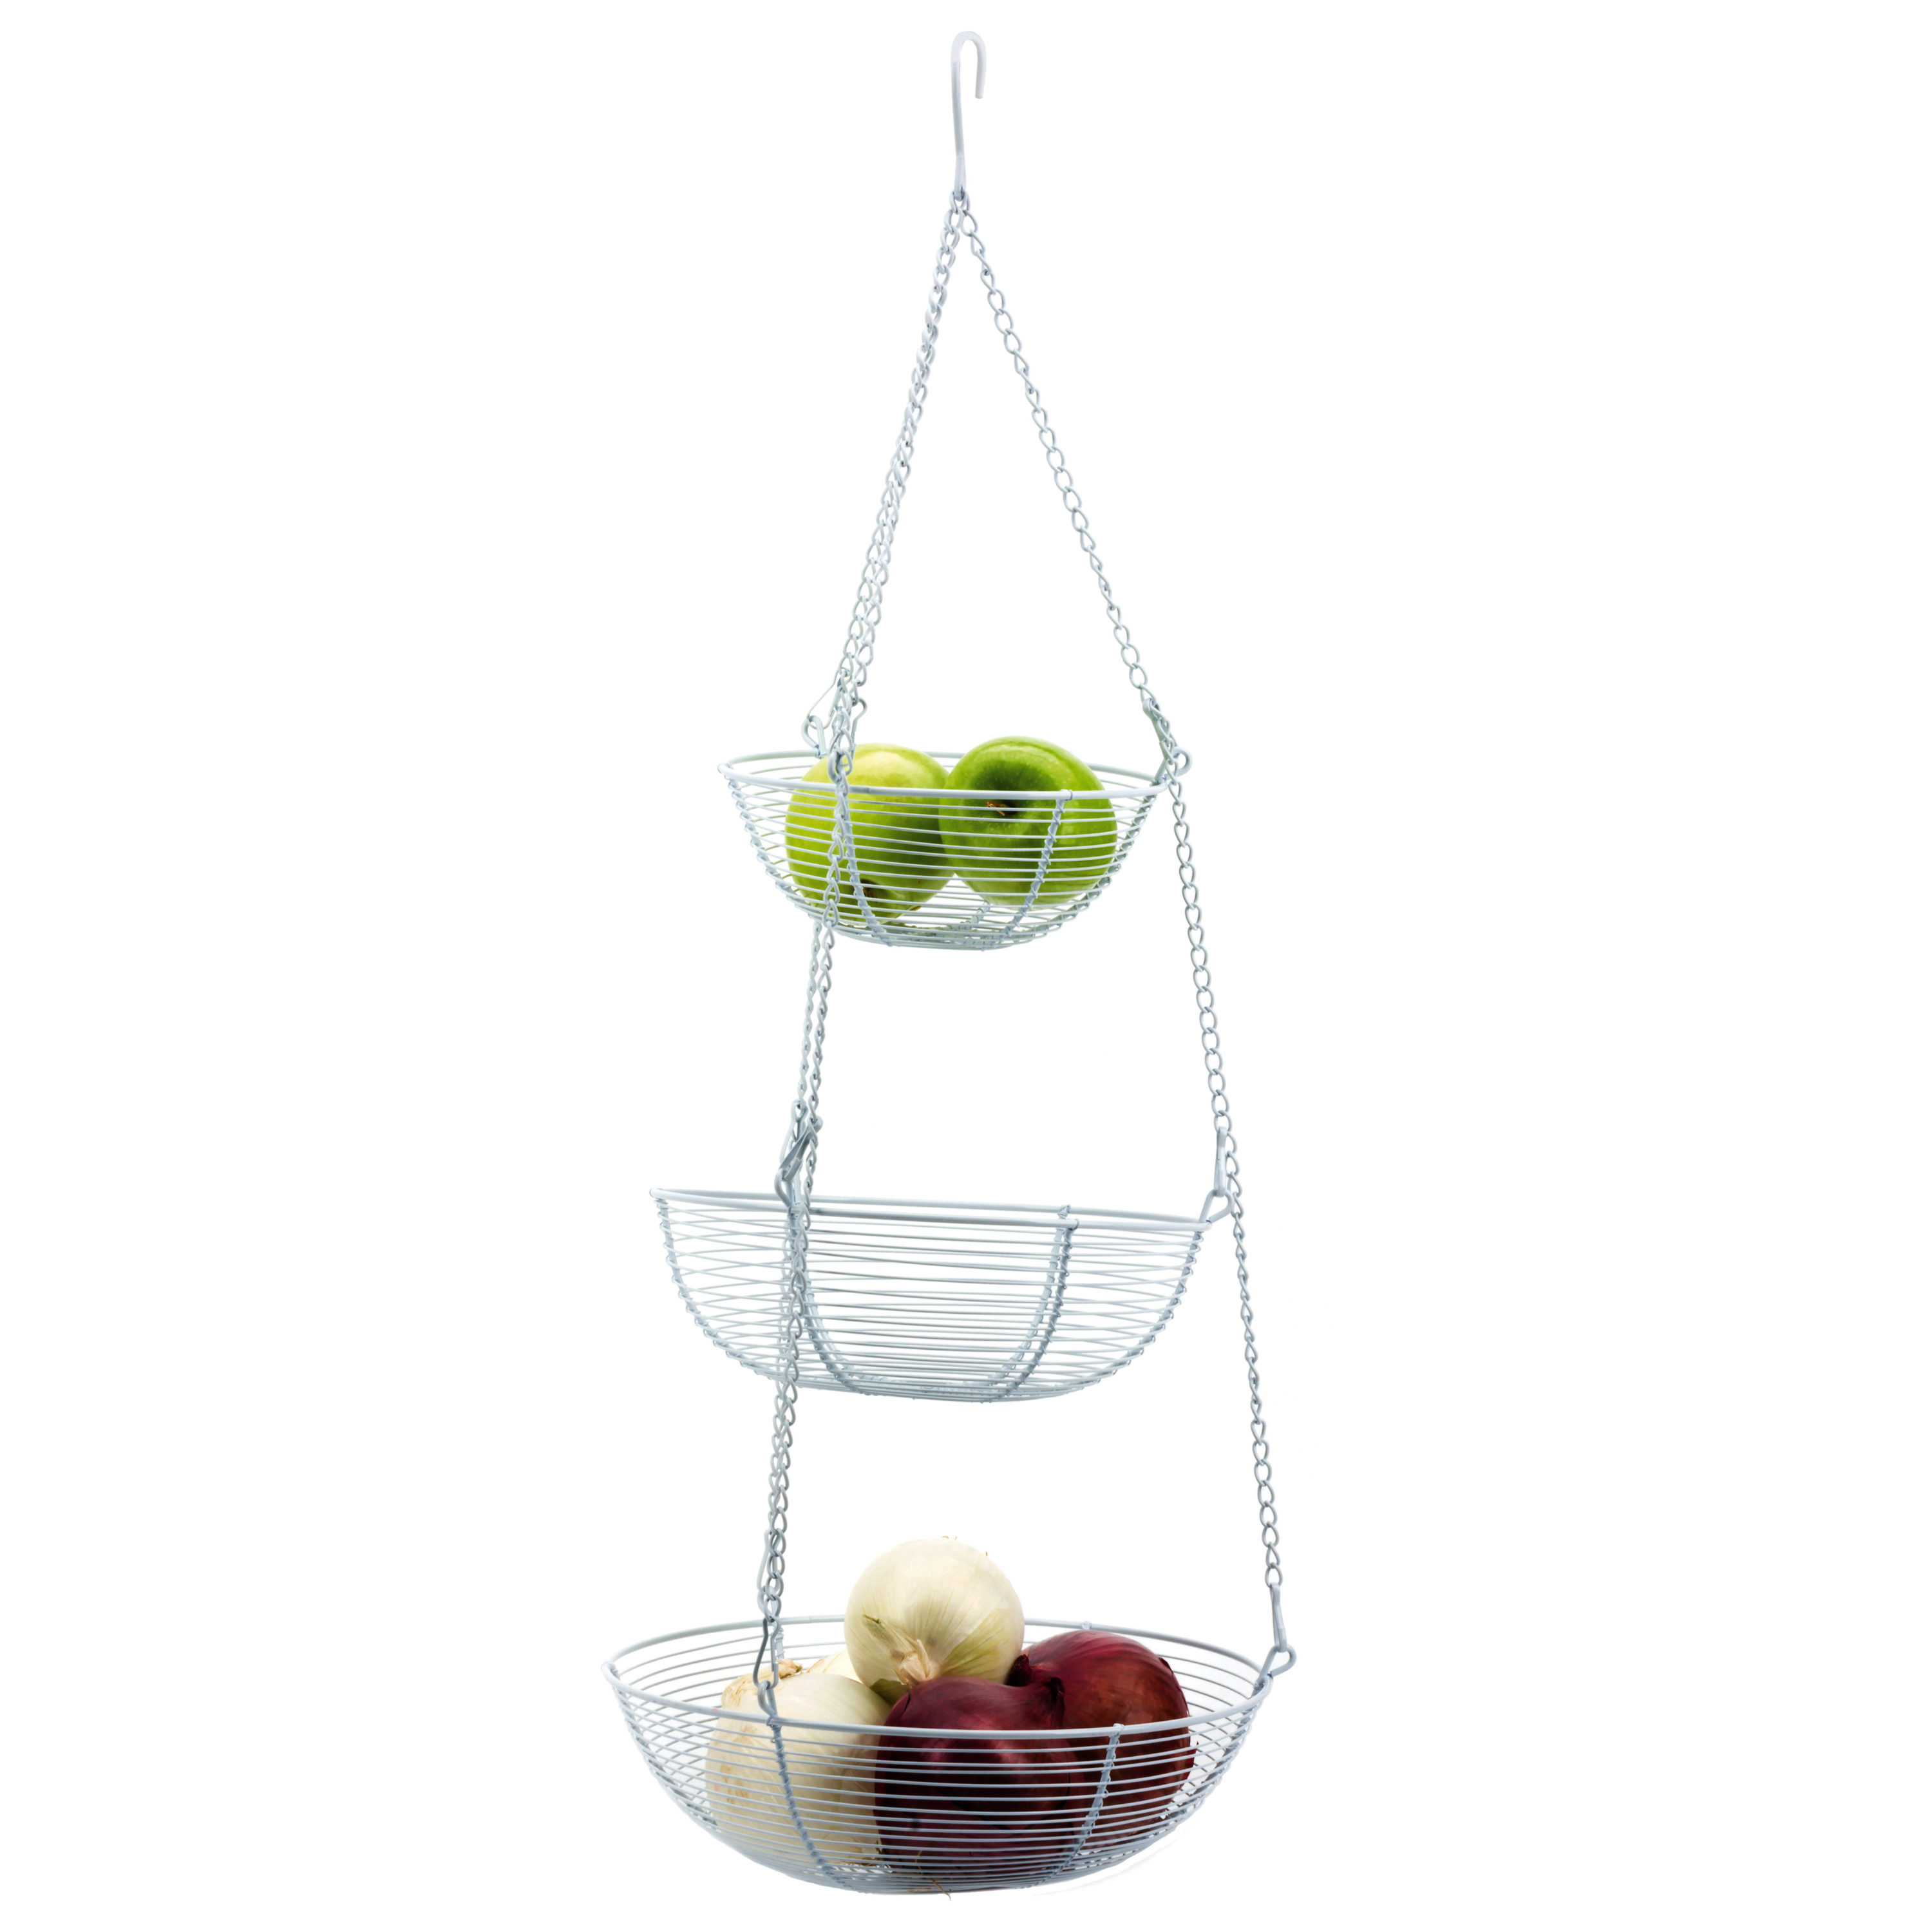 RSVP White 3-Tier Hanging Fruit and Vegetable Basket